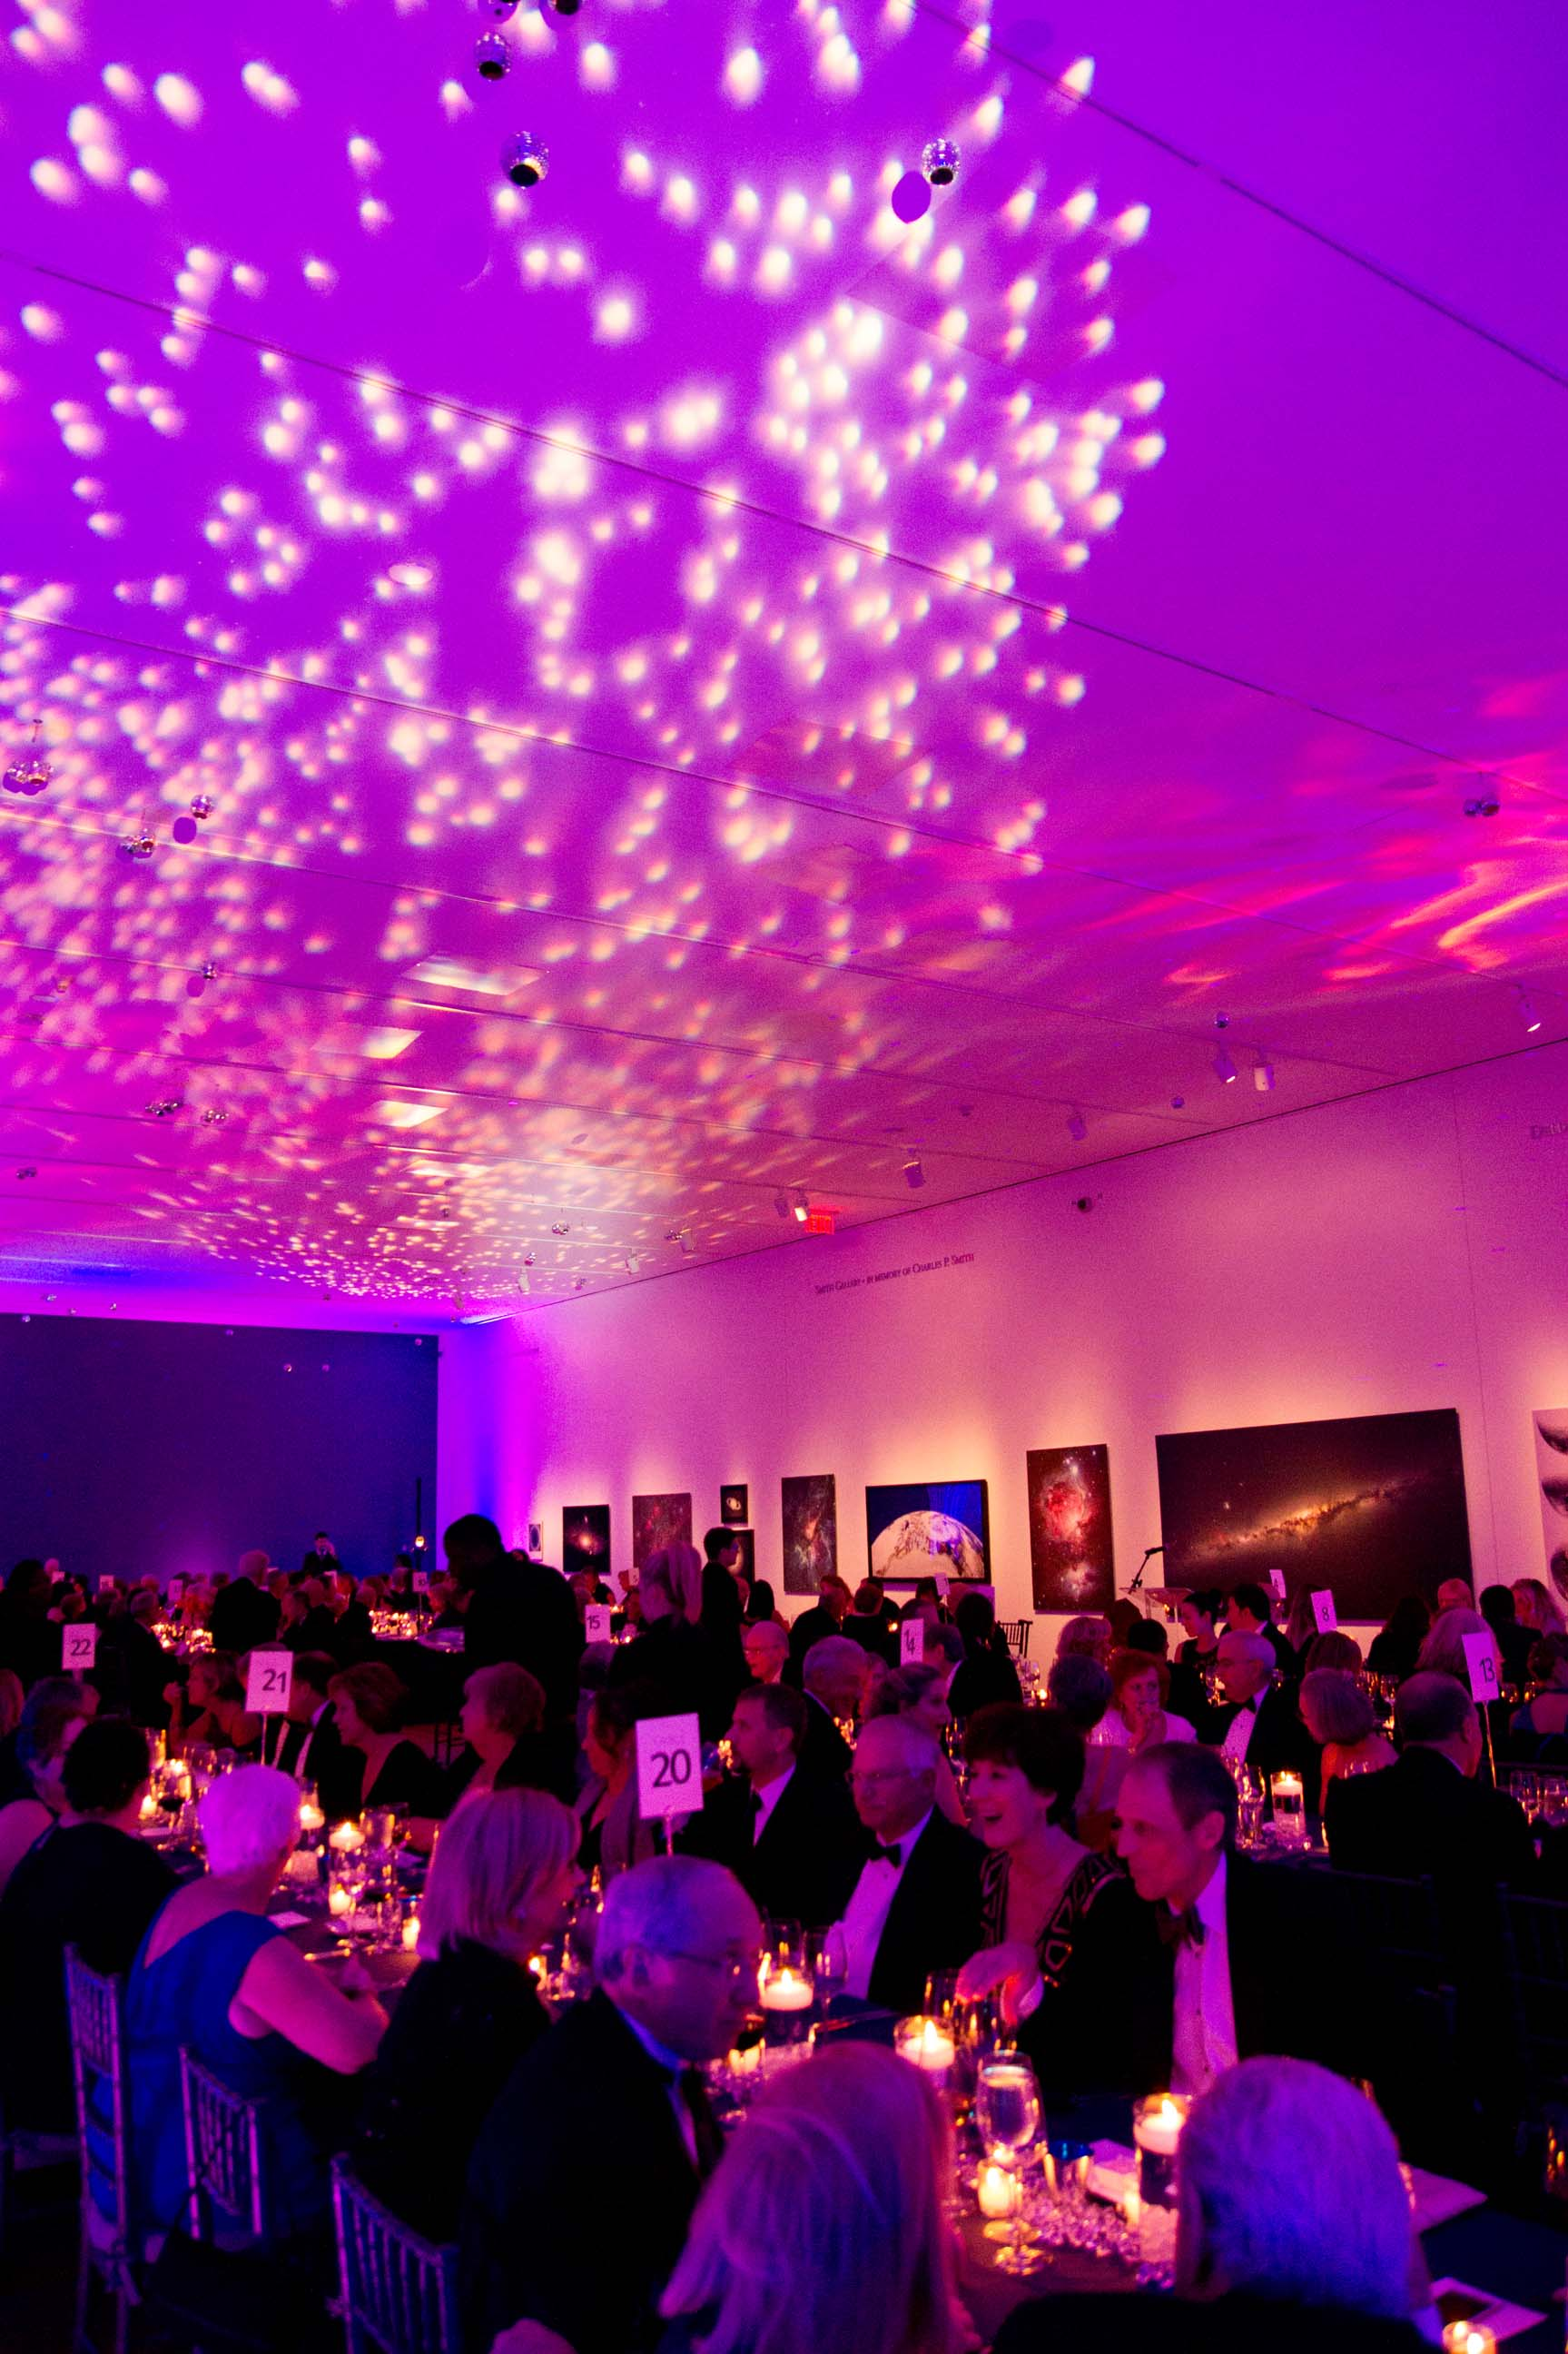 NJ_event_lighting_decor_gala_fundraiser_Michener.jpg